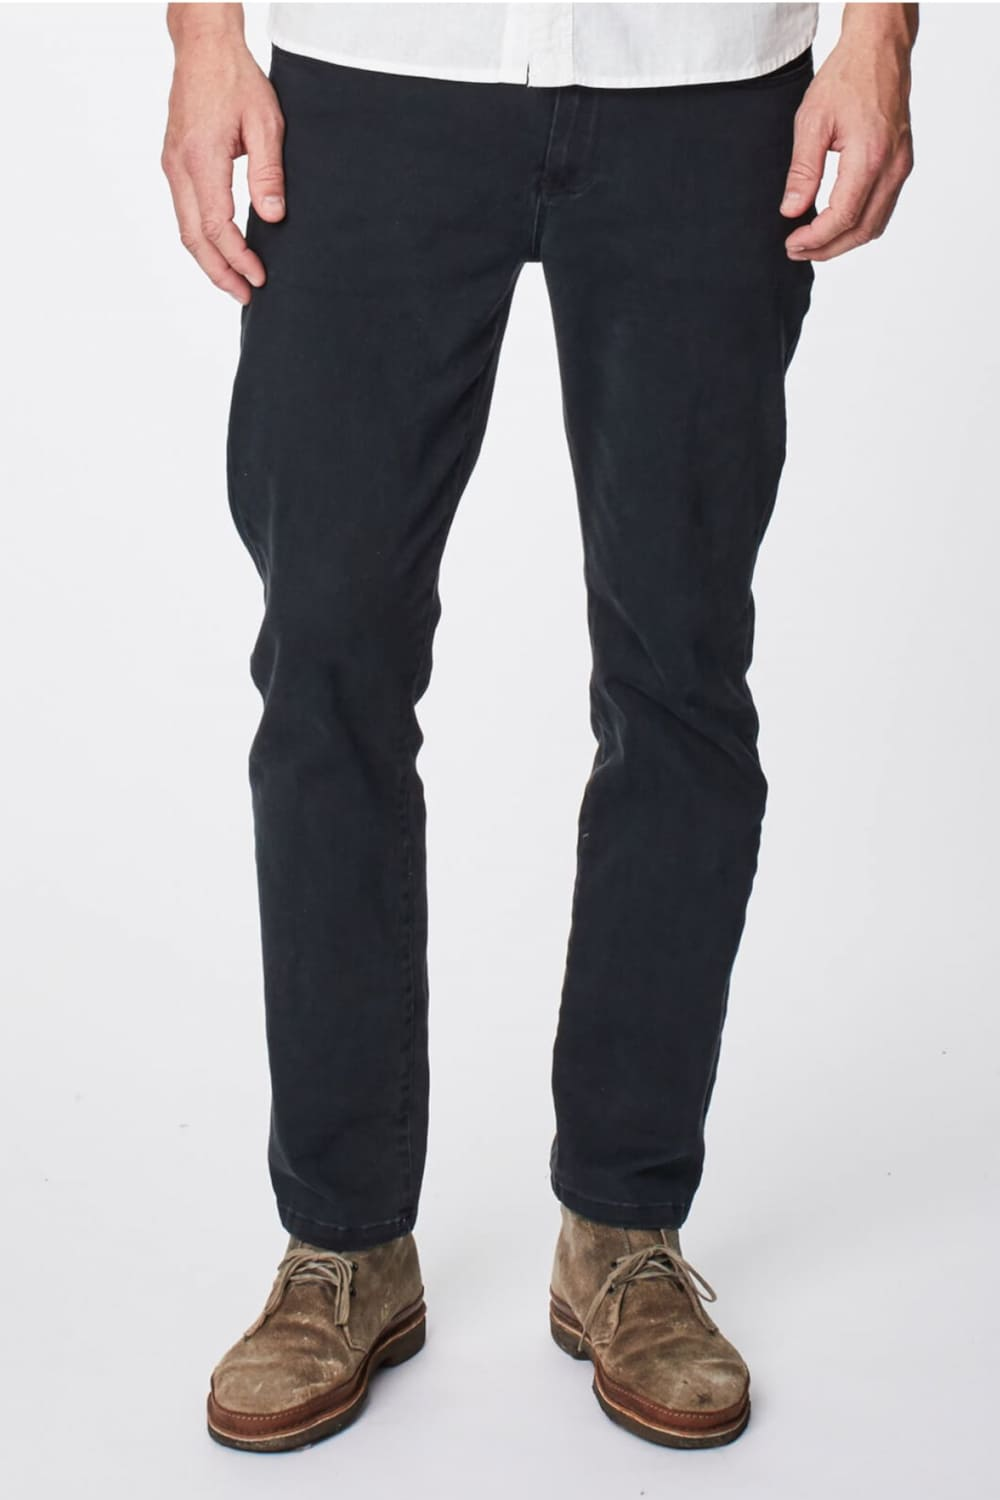 regular Jeans in dark grey